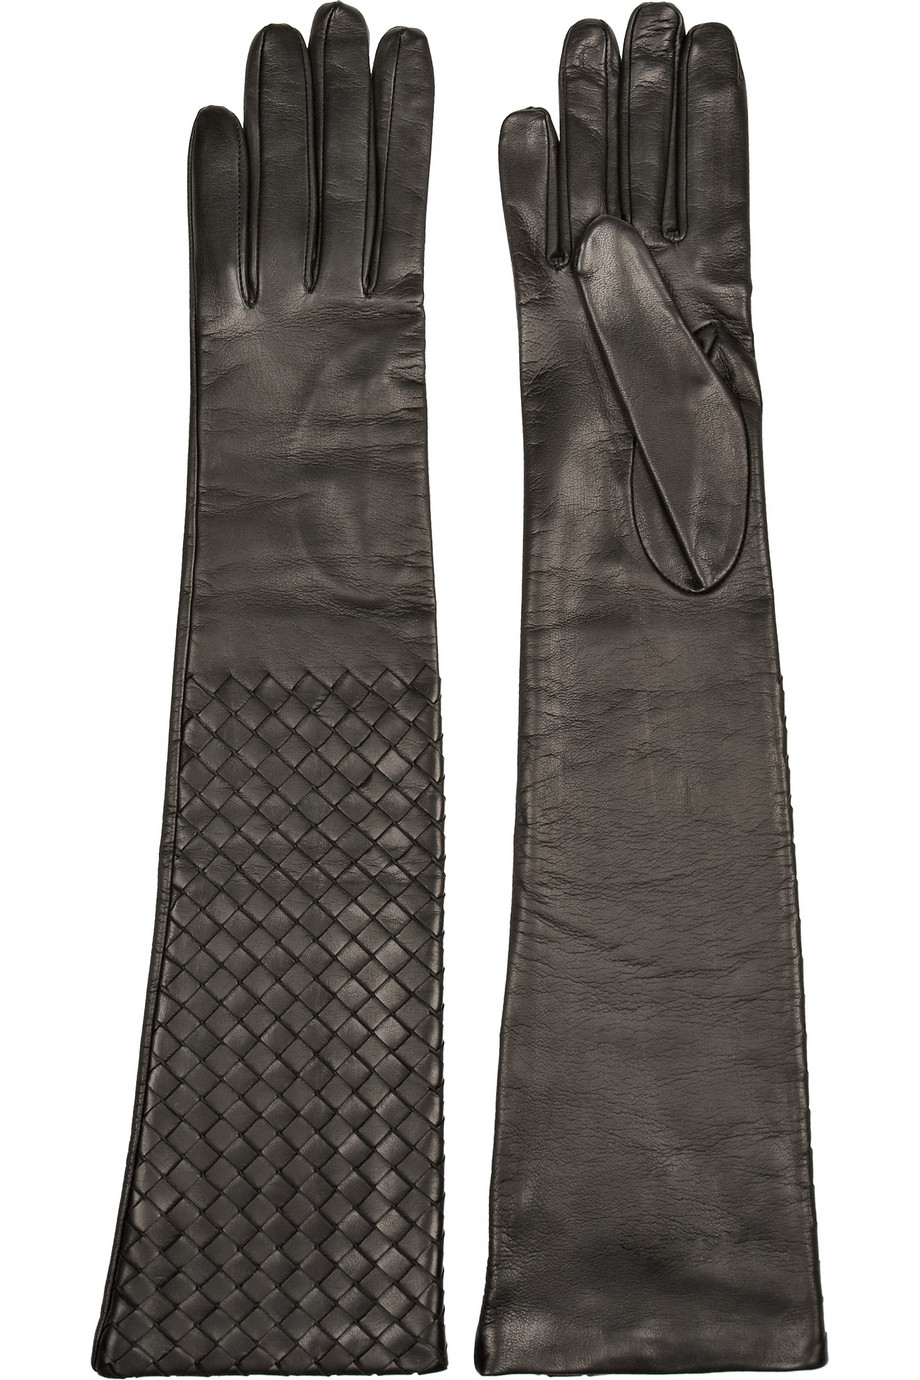 Bottega Veneta Leather Gloves.jpg